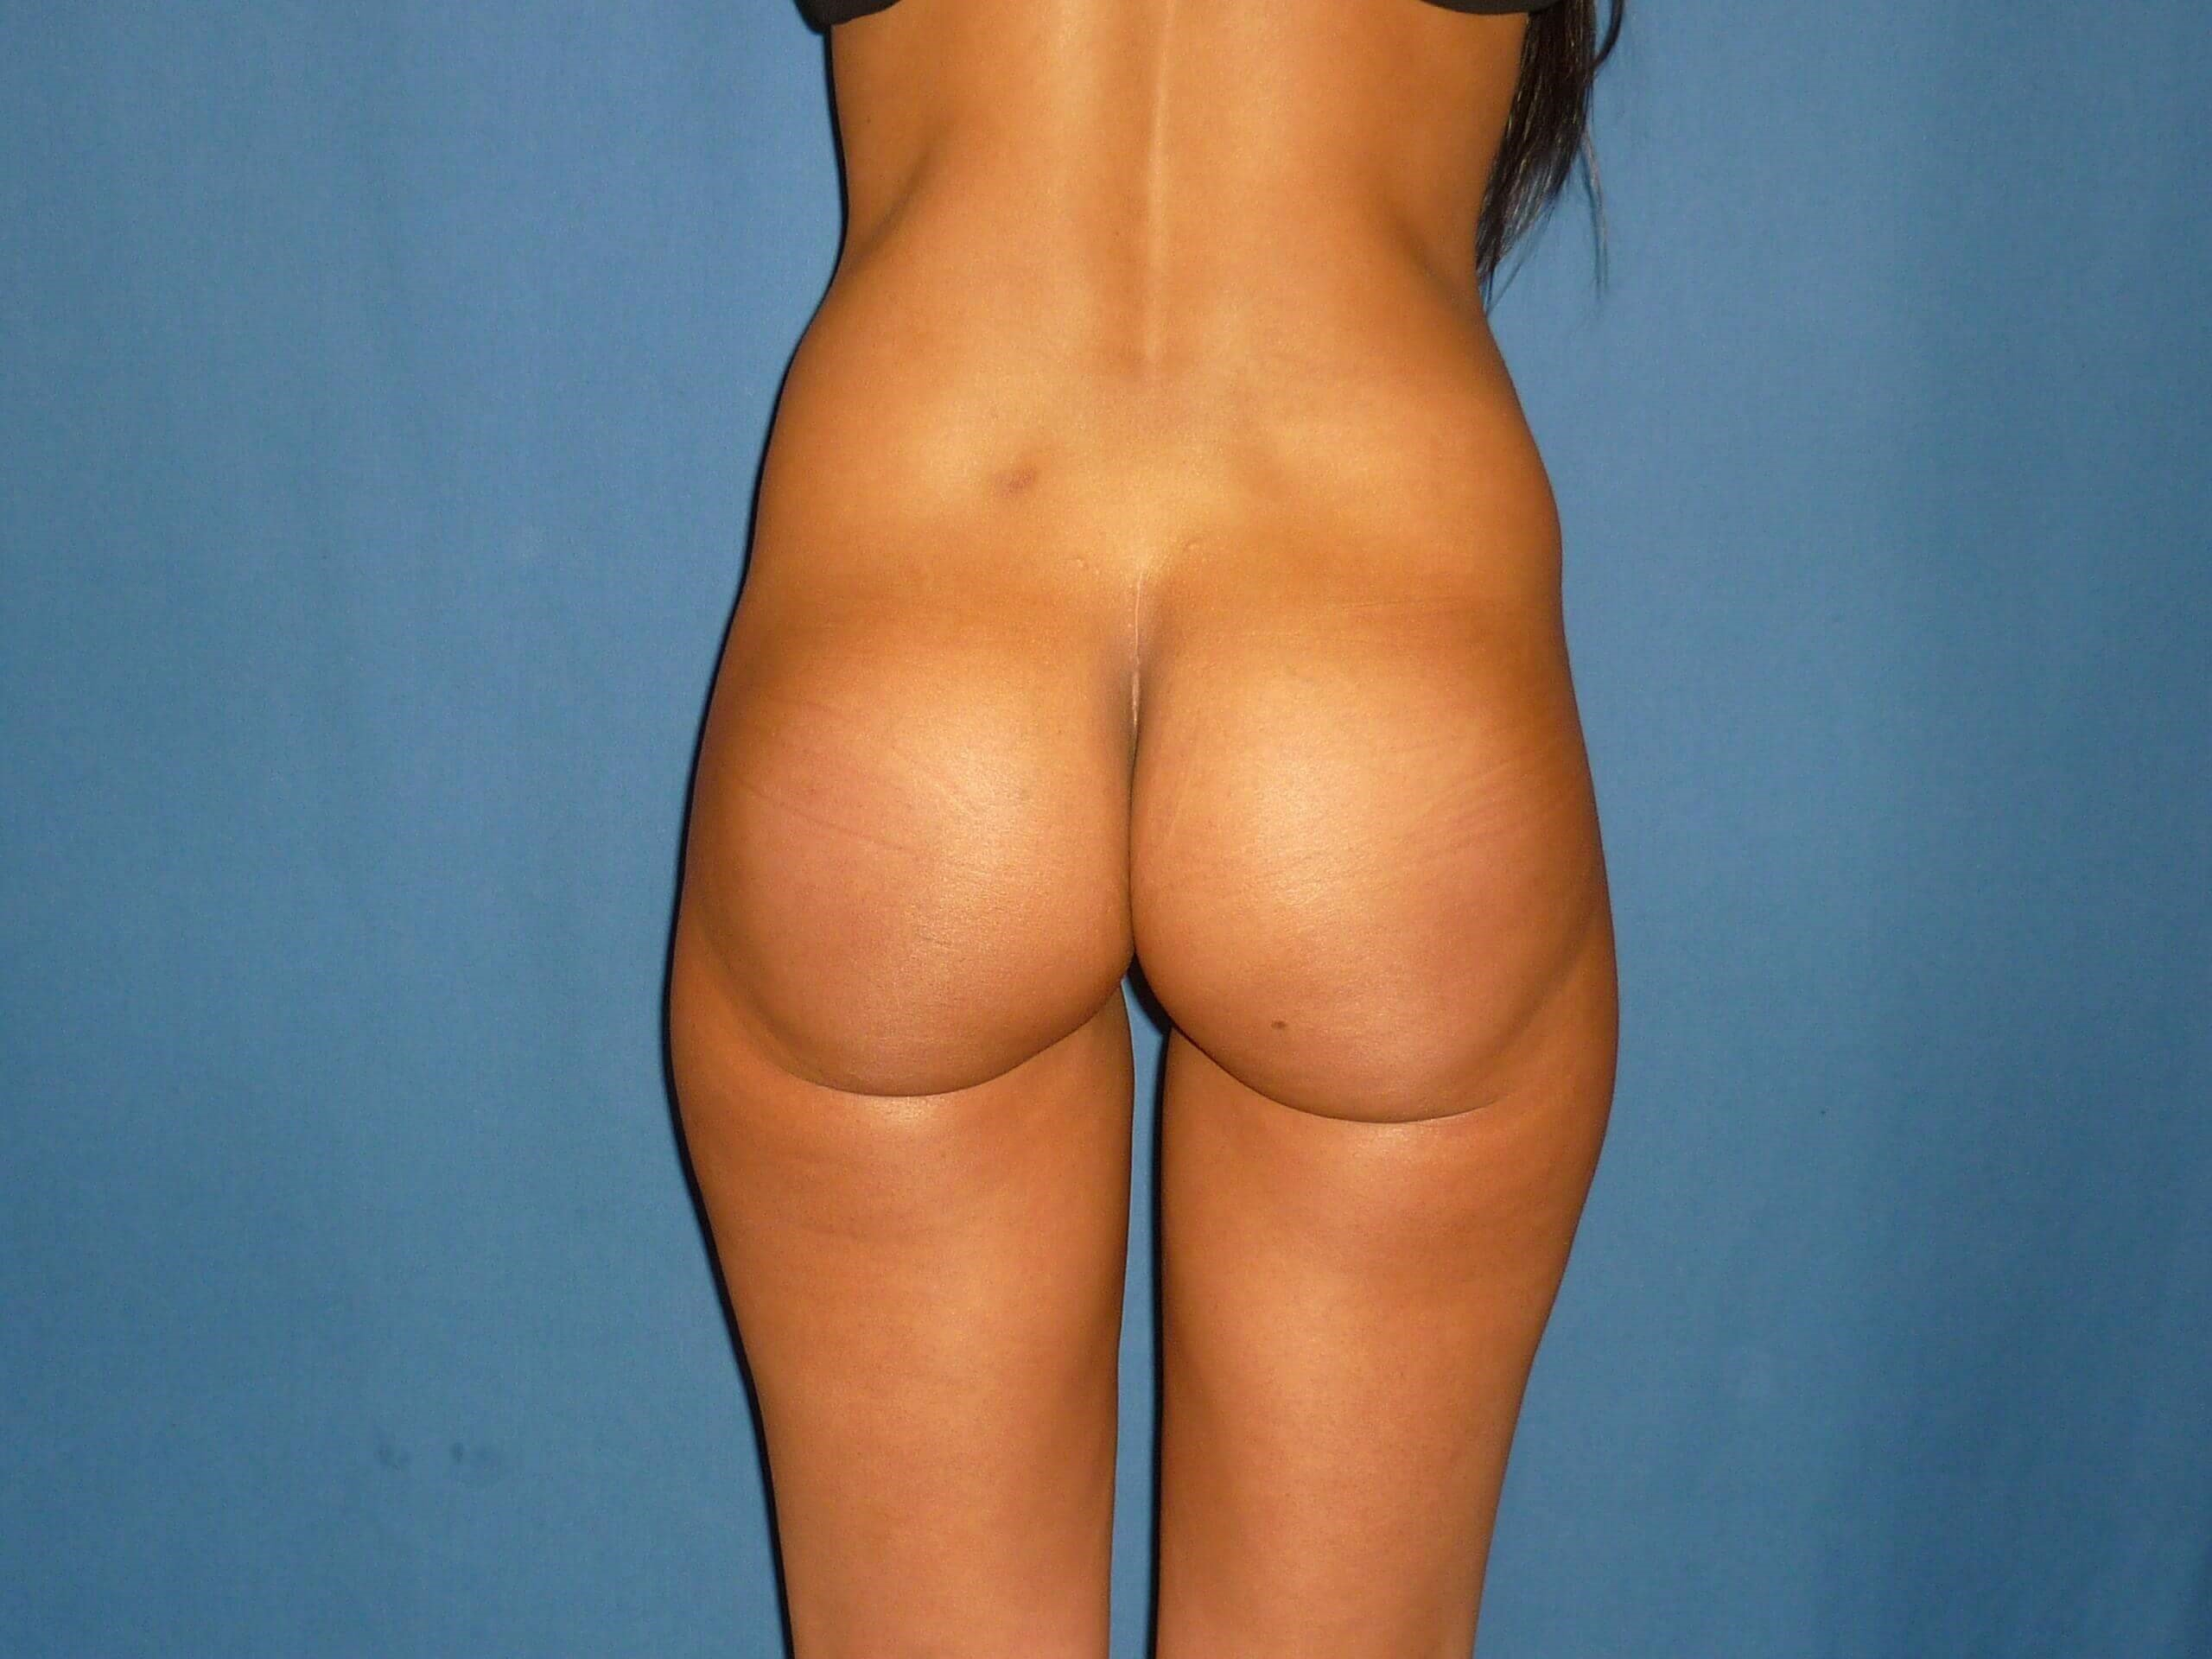 Butt implants - Denver - Shah After